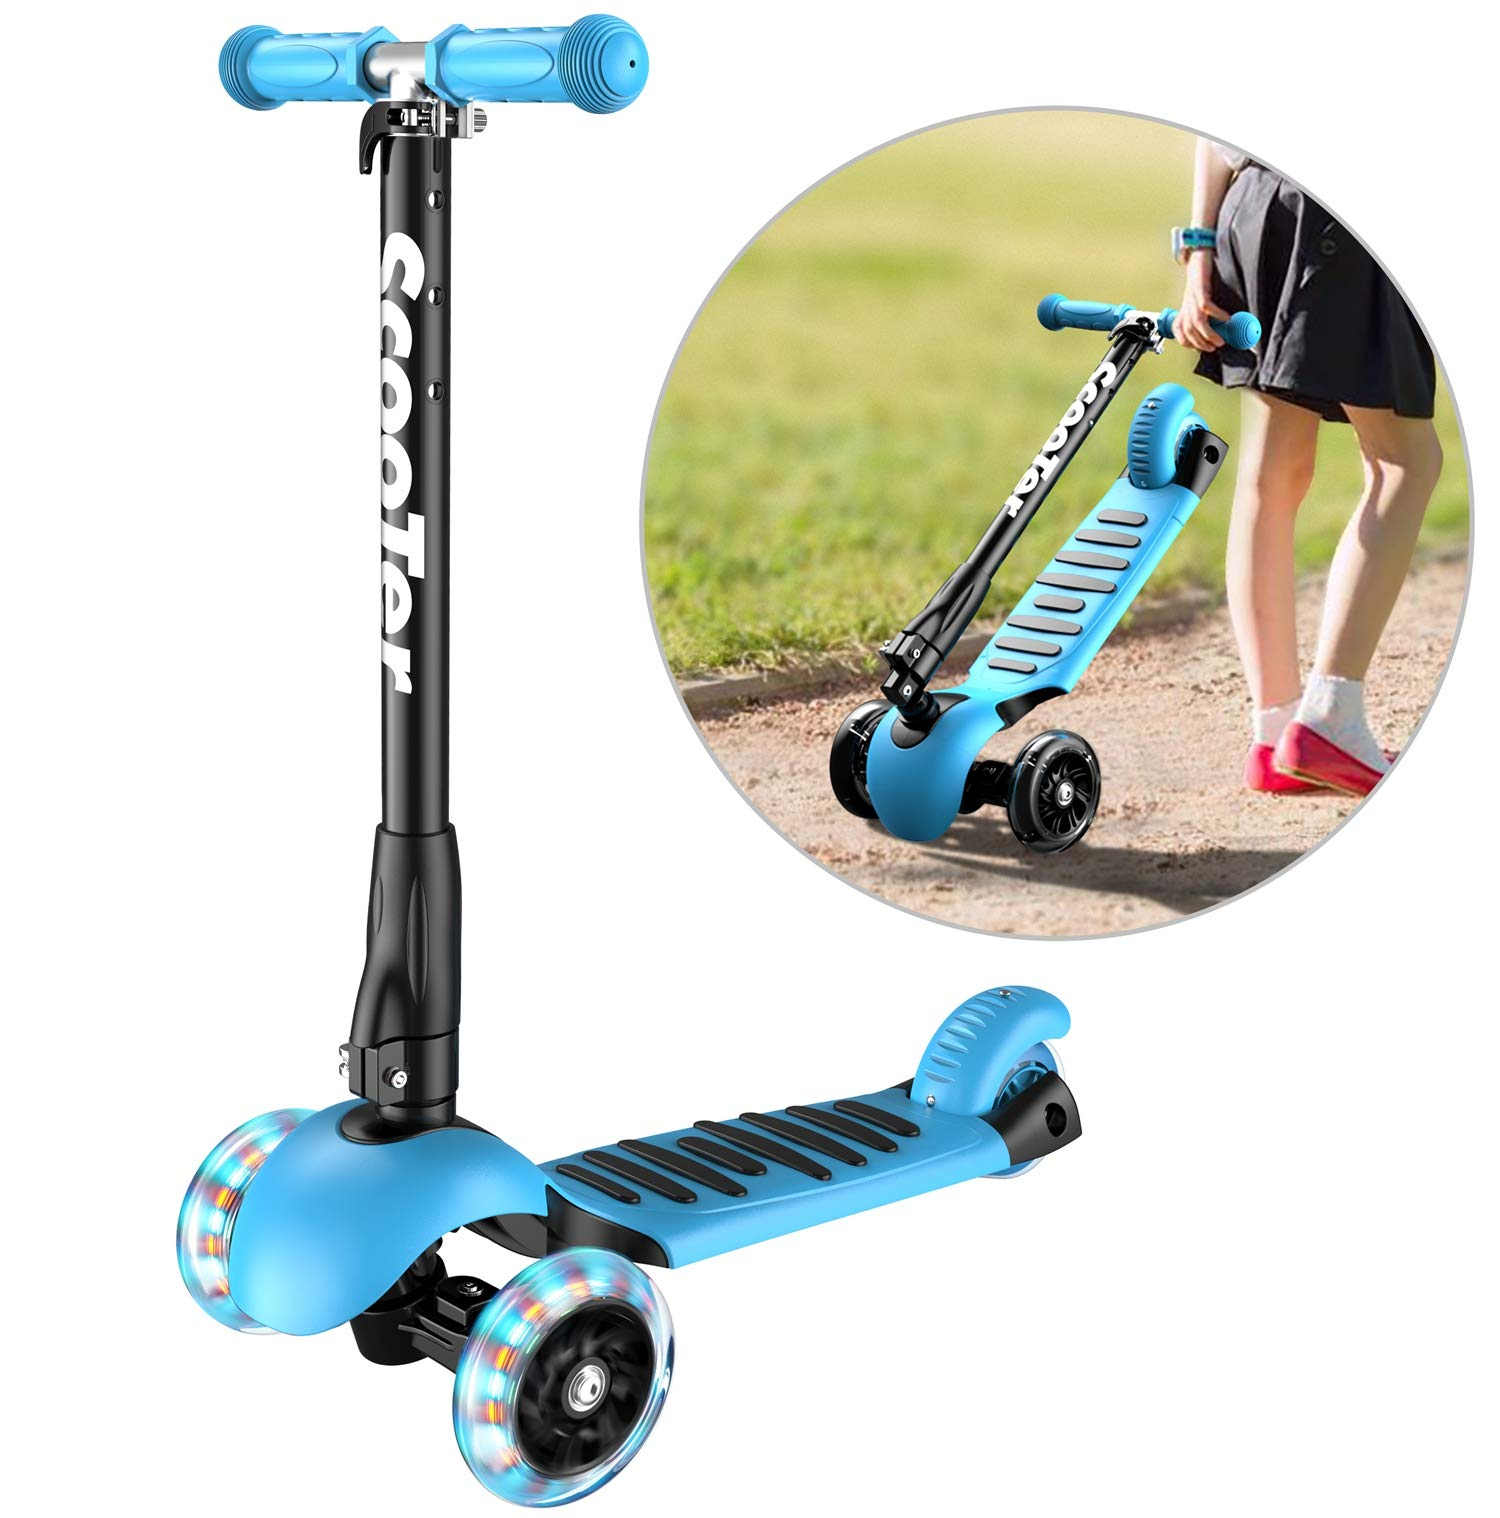 Banne Scooter Height Adjustable Lean to Steer Flashing PU Wheels 3 Wheel Kick Scooters for Kids Boys Girls (Blue) by Banne